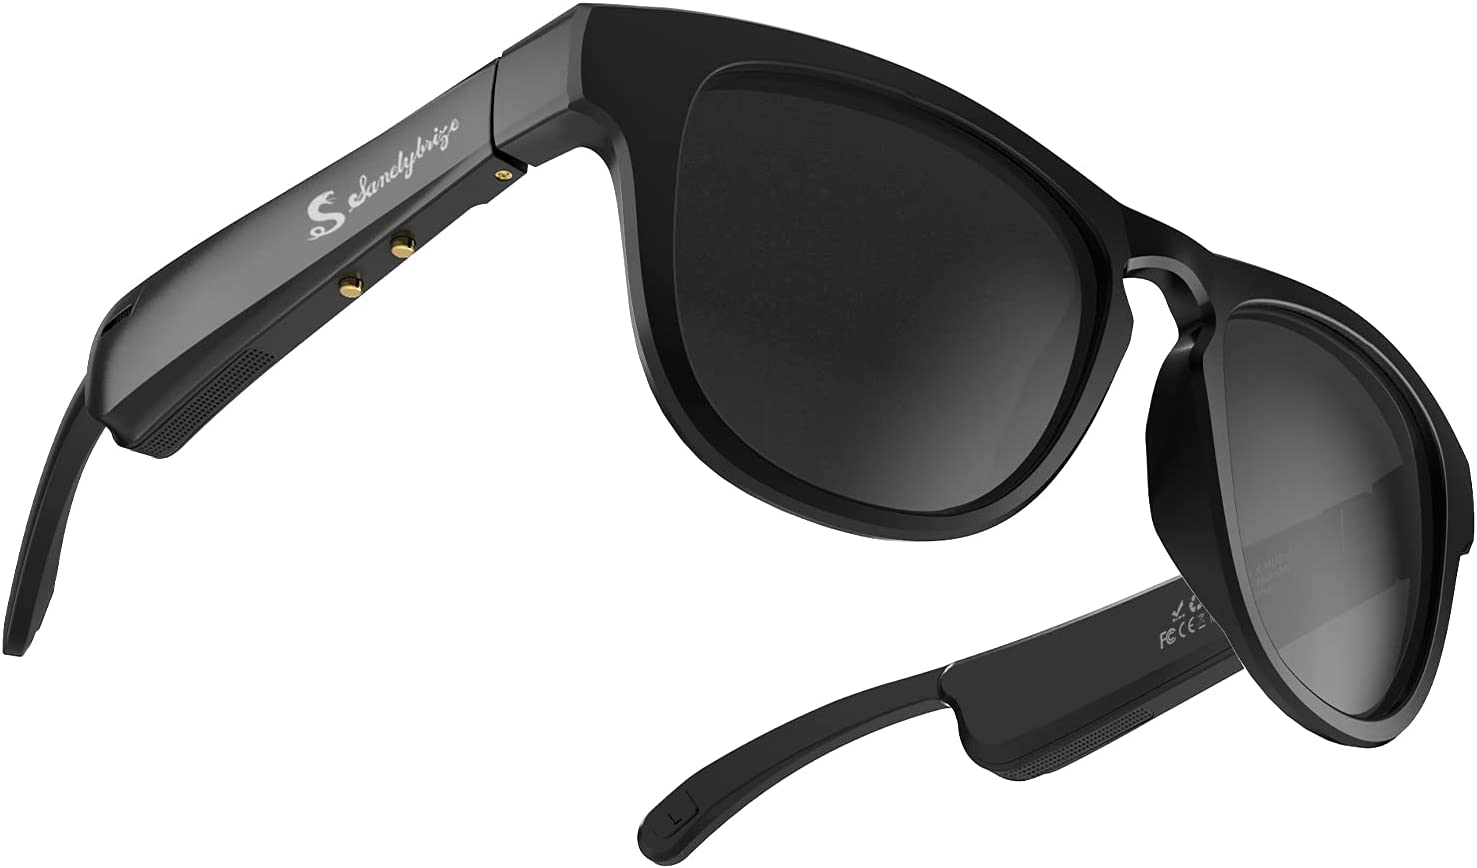 Smart Glasses with Open Ear Headphones S SANELYBRIZE SY717 Audio Sunglasses Bluetooth 5.0 (Black Frame with Black Grey Lens)